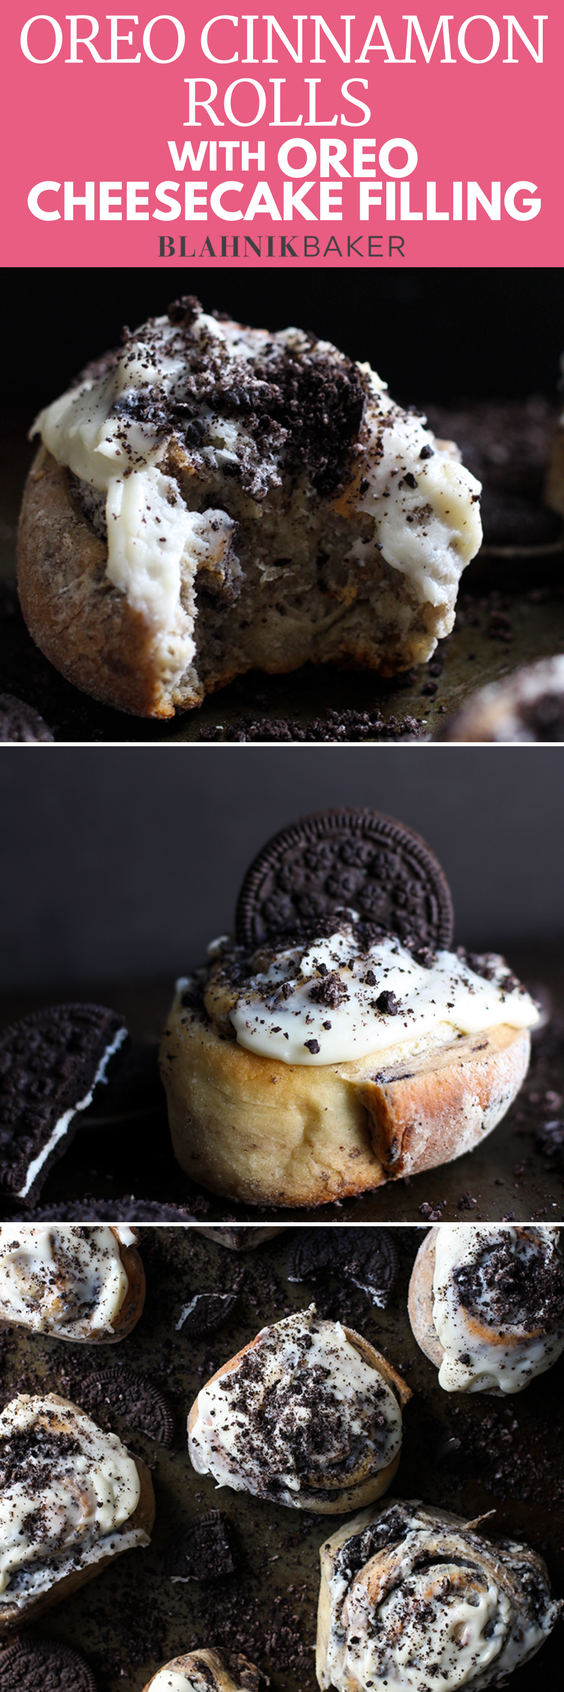 These Oreo Cinnamon Rolls have all the workings of regular cinnamon rolls but are swirled with incredible--and decadent--Oreo cheesecake filling.